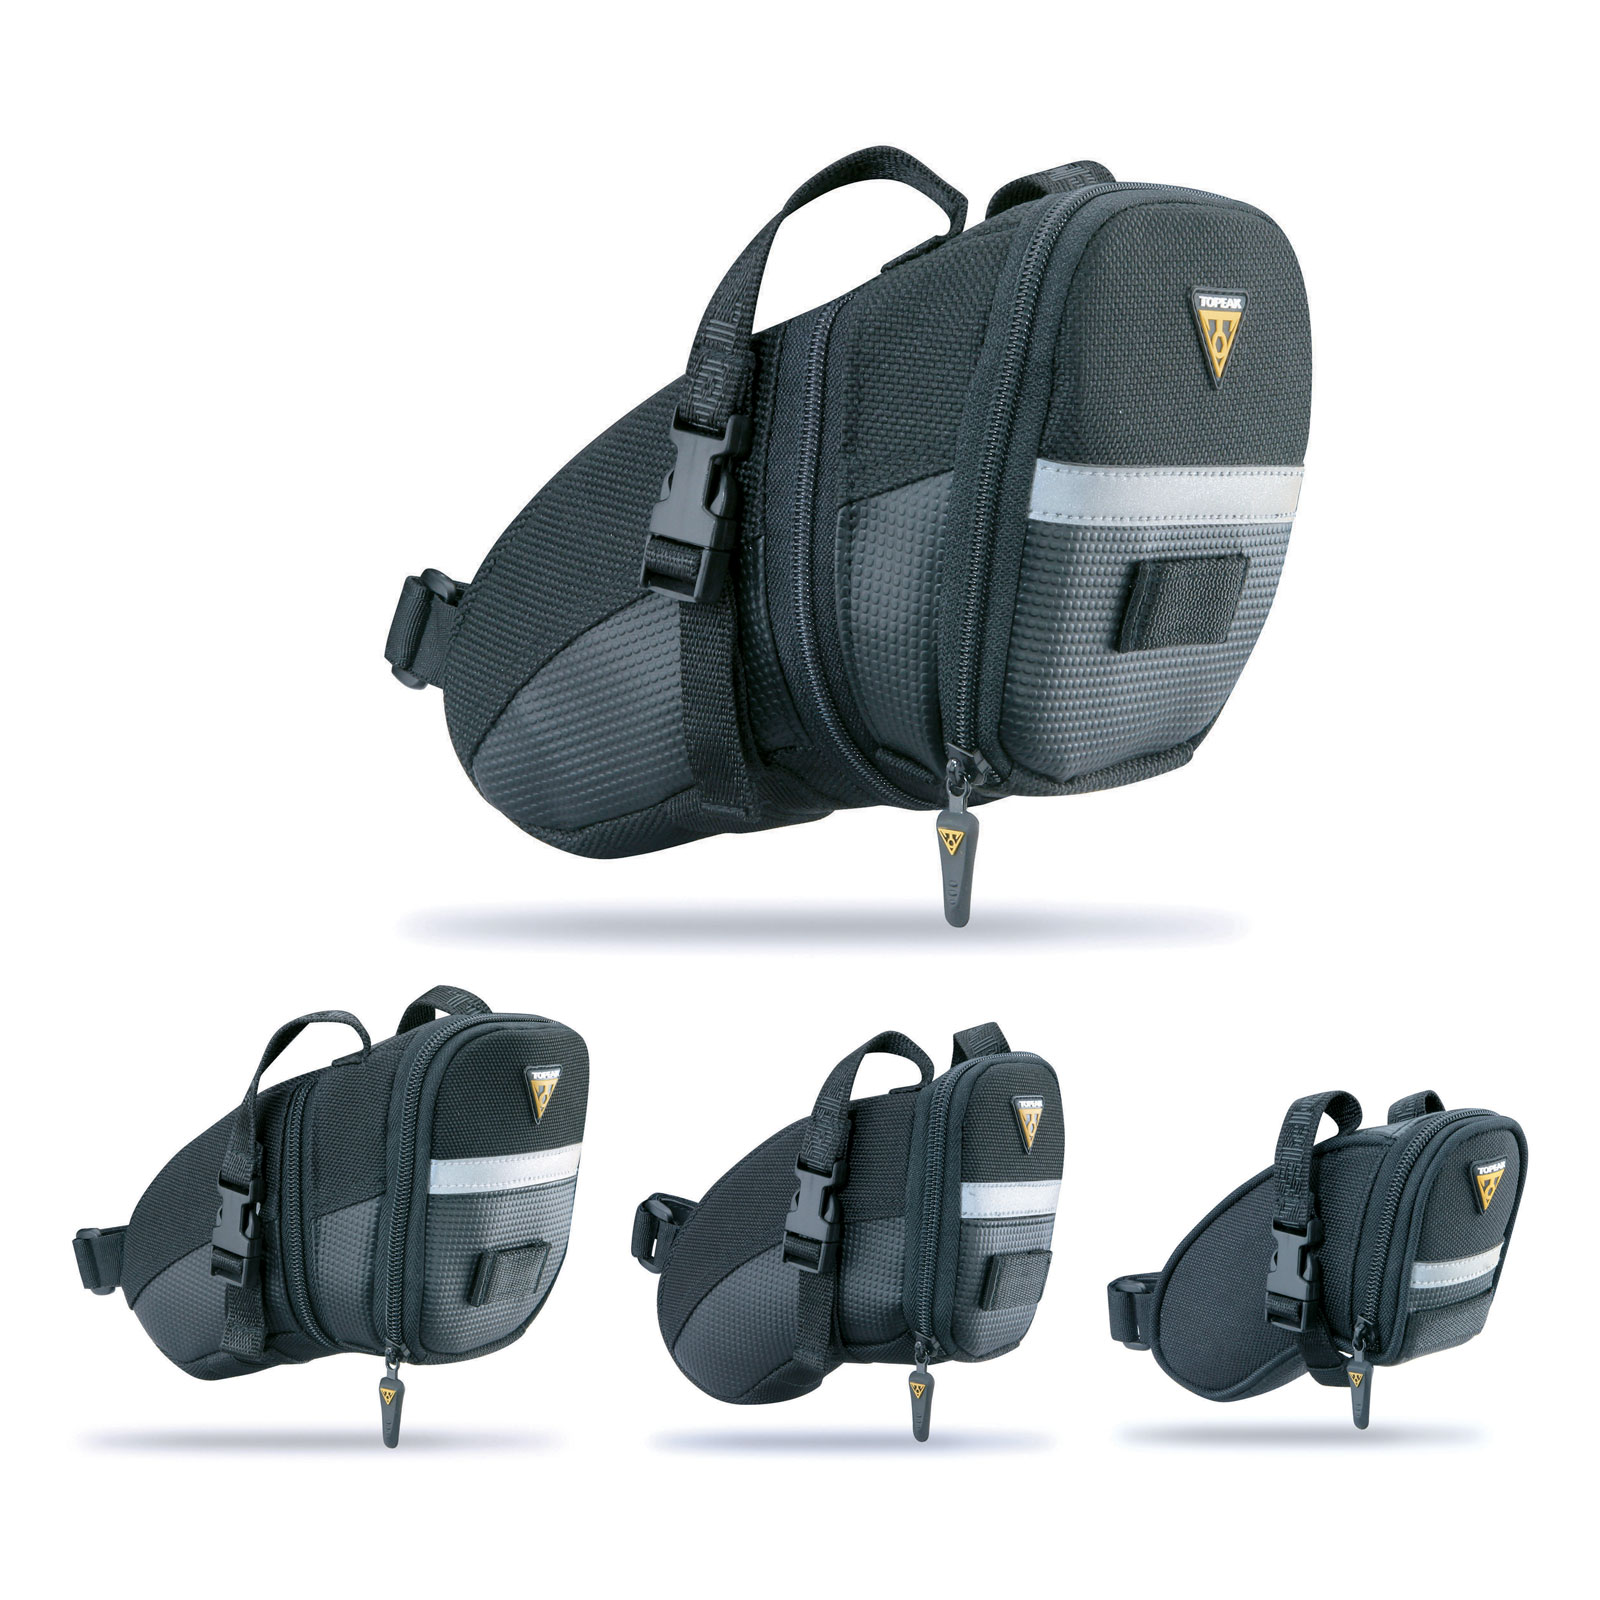 Topeak-Aero-Wedge-Pack-Strap-On-Seat-Mounted-Bag-for-27-2-34-9mm-Seatposts